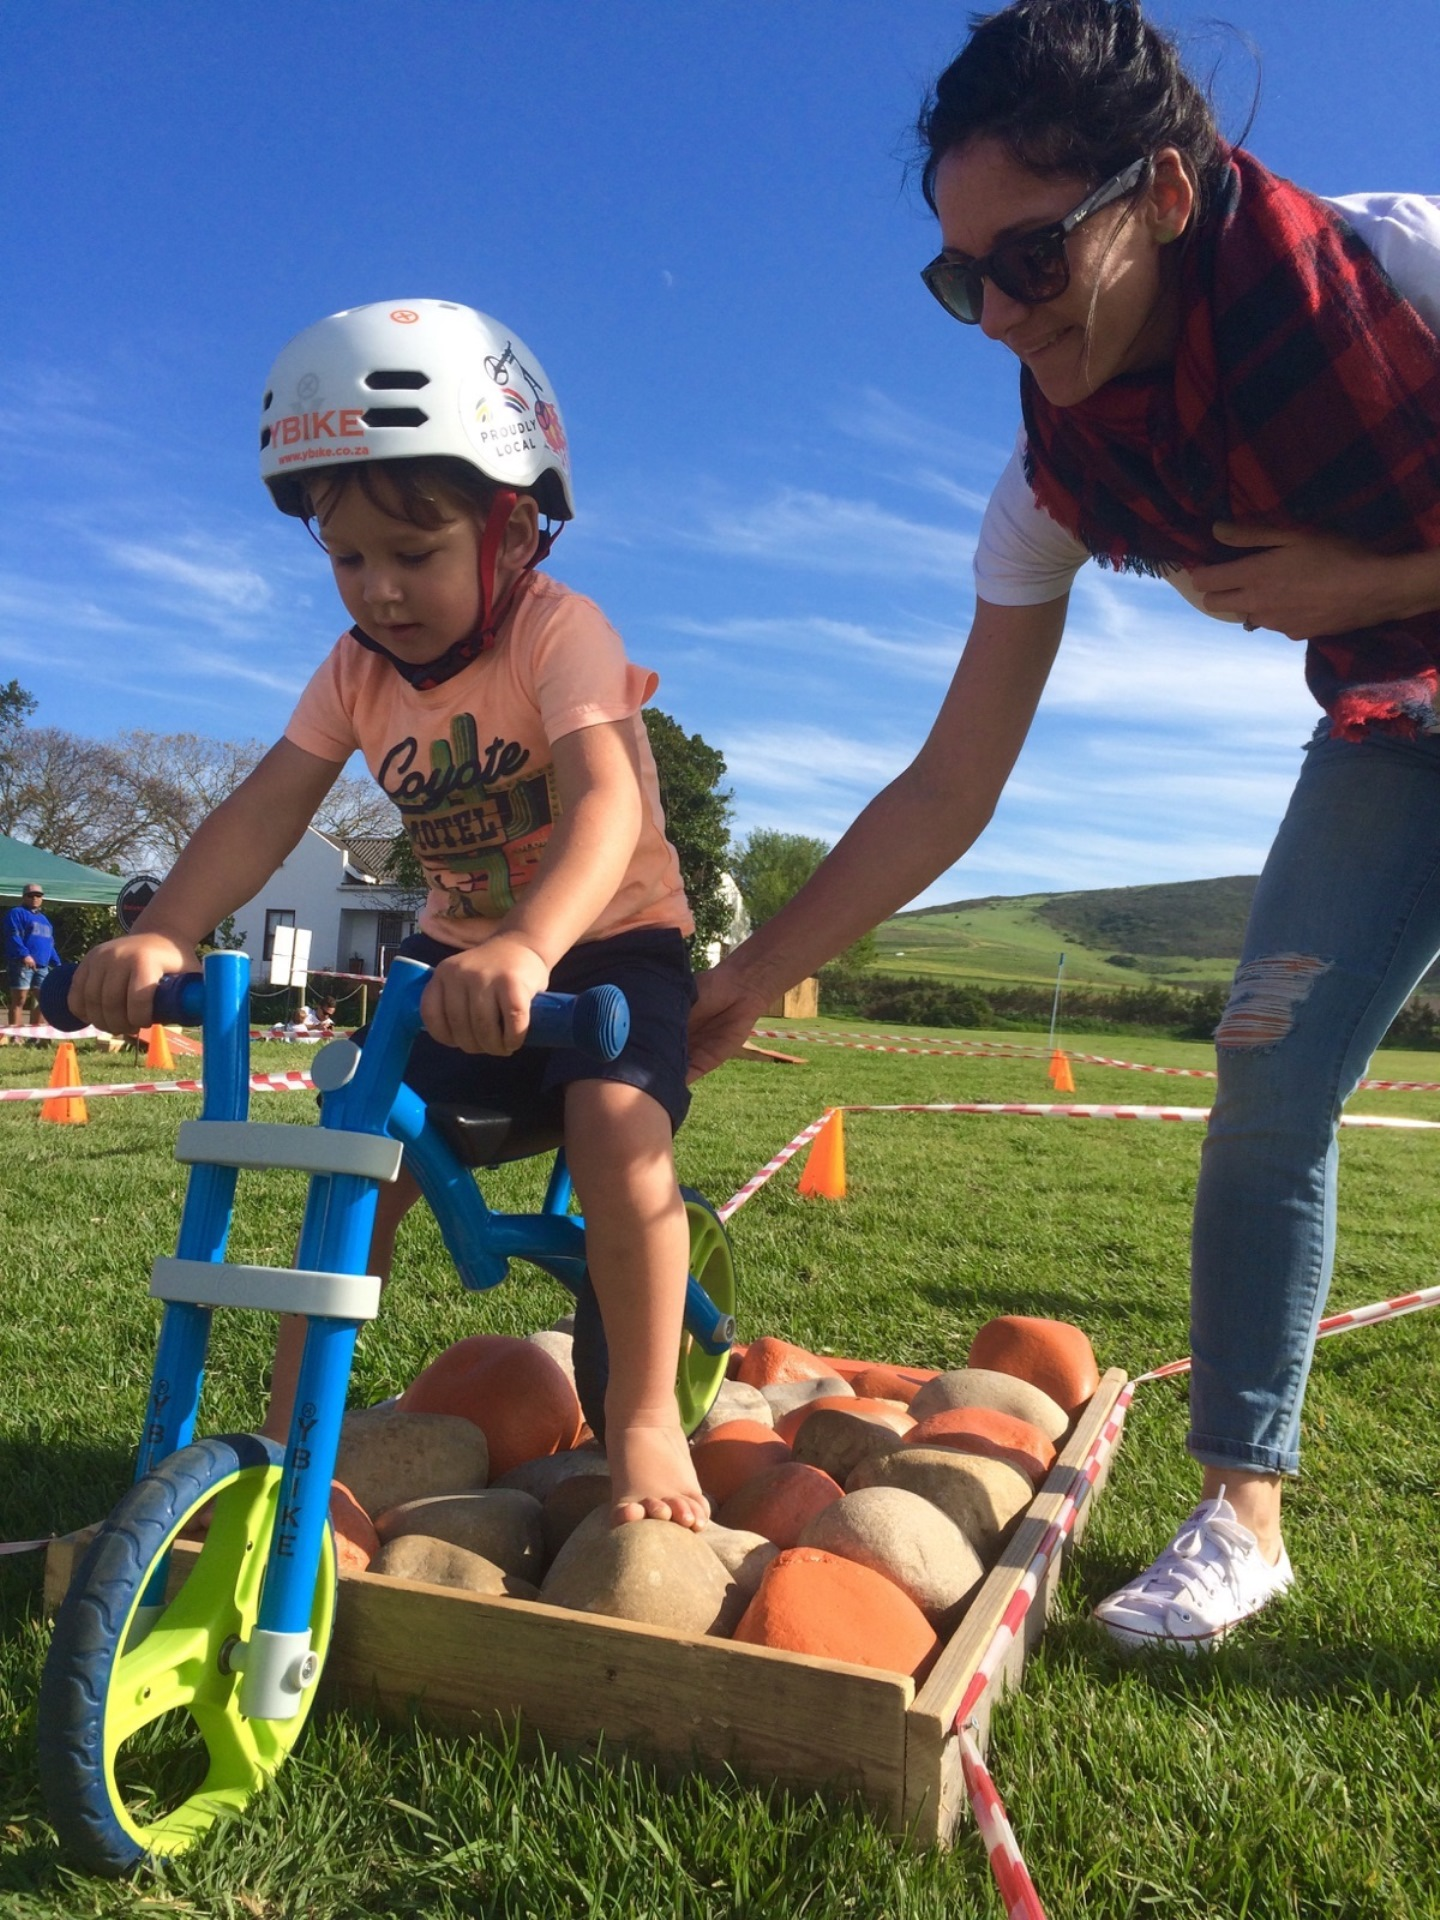 Junior MTB enthusiasts will be able to 'test their balance' with YBIKE at the 3rd annual Fedhealth Kids MTB Events that will take place at the picturesque Boschendal Wine Estate on Saturday, 16 September 2017.  On event day YBIKE will have a fun and challenging Balance Bike Obstacle Course designed to replicate what you would find out on the MTB trails.  Obstacles will include:  a rock garden, balance beam and see-saw to mention just a few.  The obstacles are fun, but functional as they hone the child's skill and overall control of the bike.  Seen here:  A junior mountain biker testing his skill on a YBIKE.